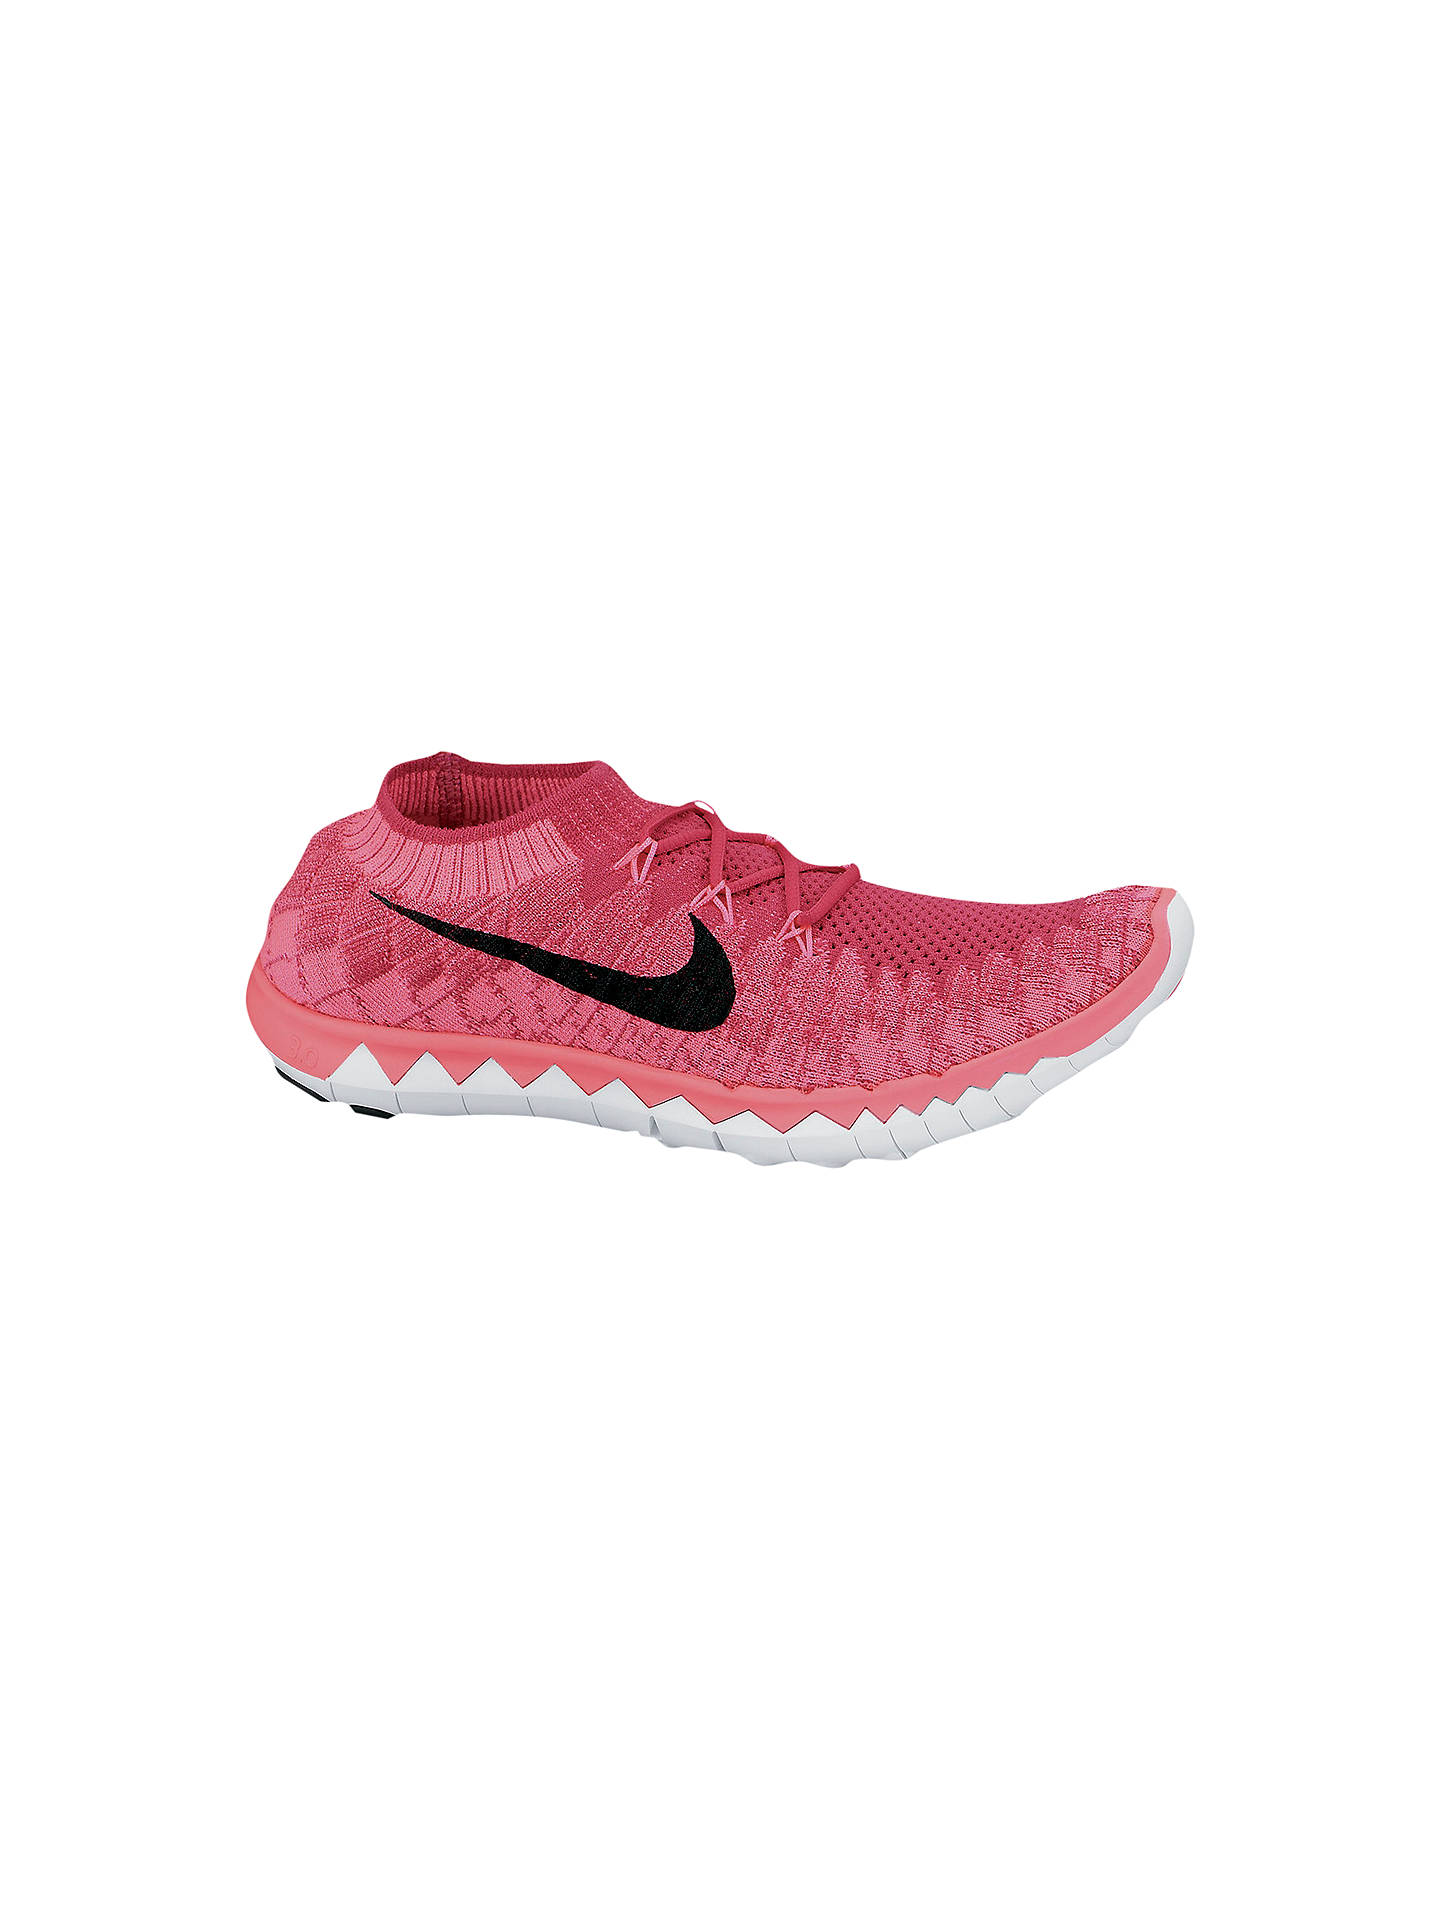 7428b64fd Nike Free 3.0 Flyknit Women s Running Shoes at John Lewis   Partners